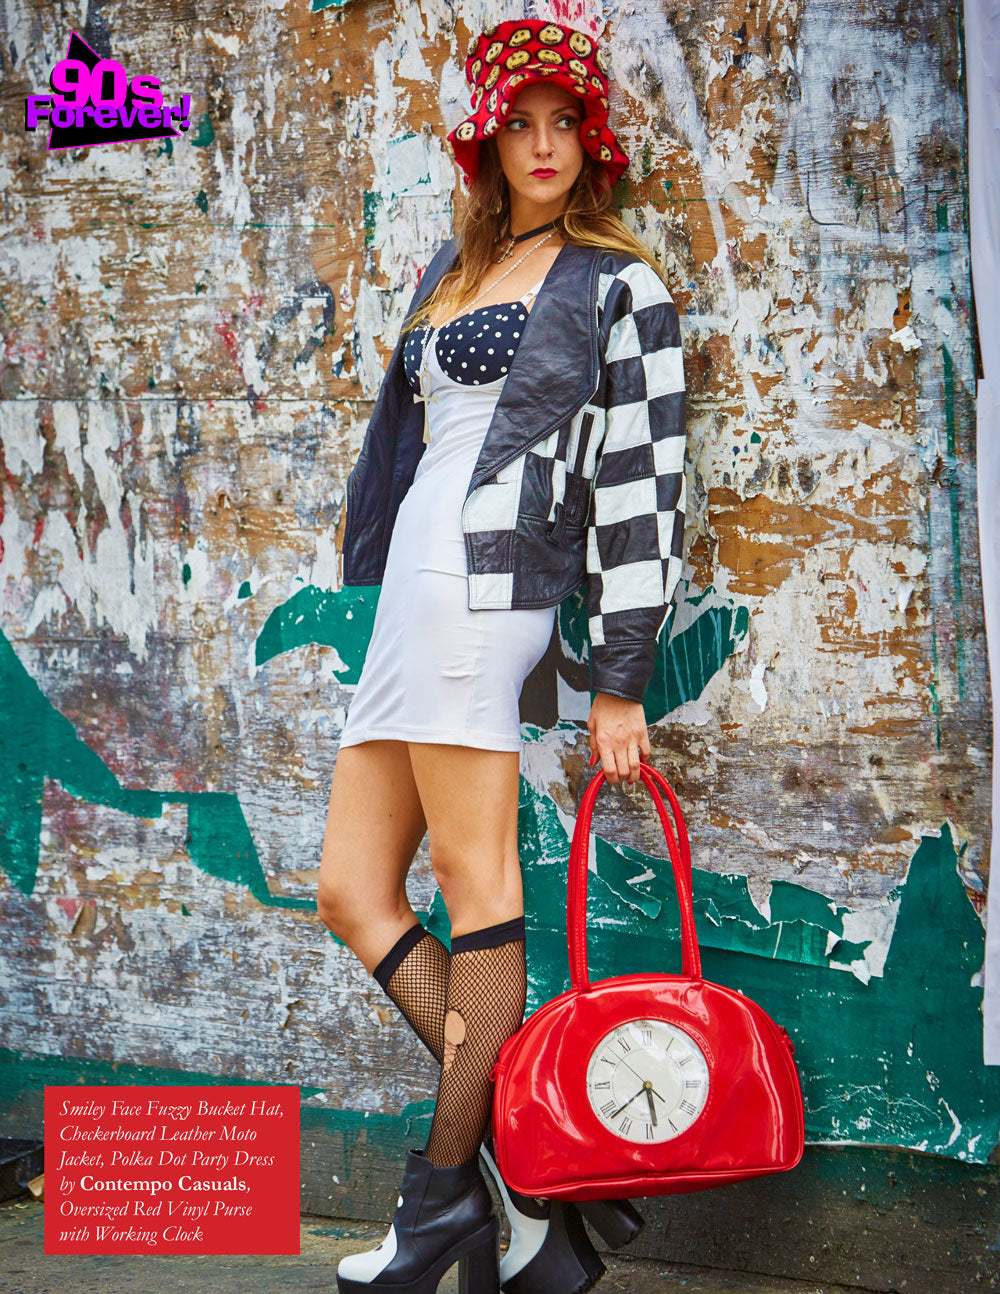 90s Forever Retro Vintage Fashion Apparel Lookbook - Fuzzy Bucket Hat and Contempo Casuals Polka Dot Party Dress